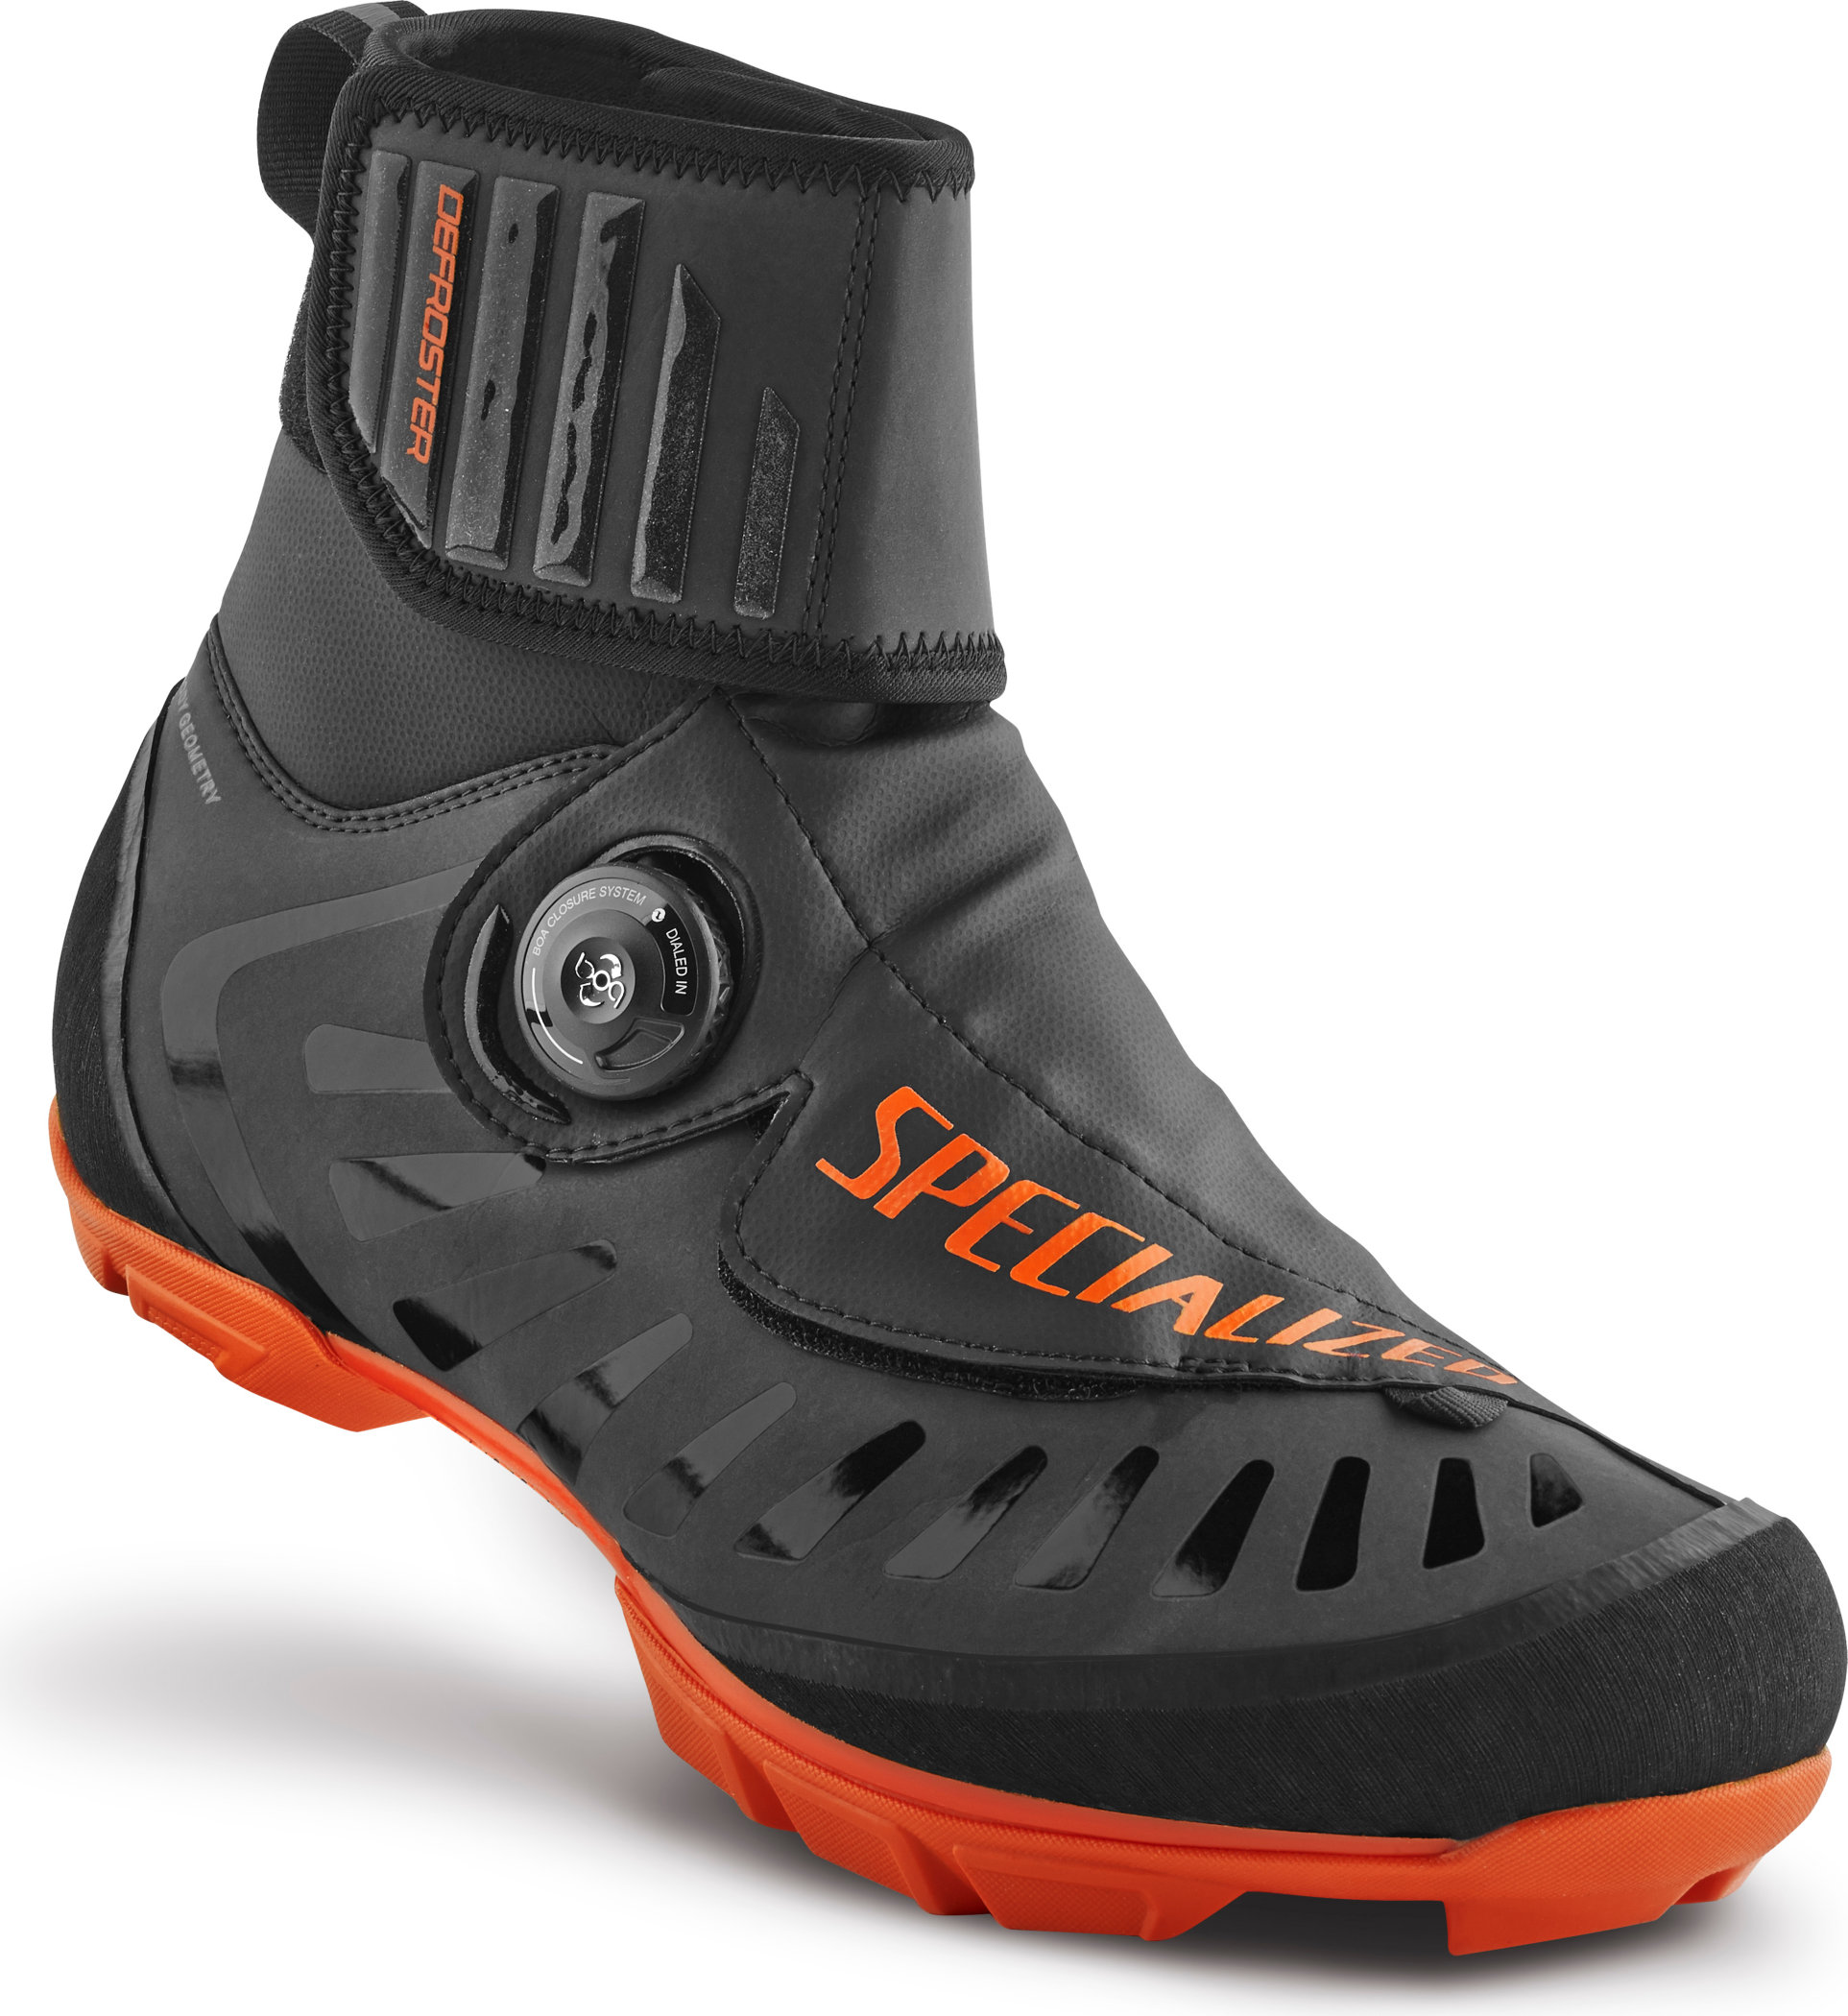 SPECIALIZED DEFROSTER TRAIL MTB SHOE BLK/NEON ORG REFL 36/4.25M/5.75W - Alpha Bikes